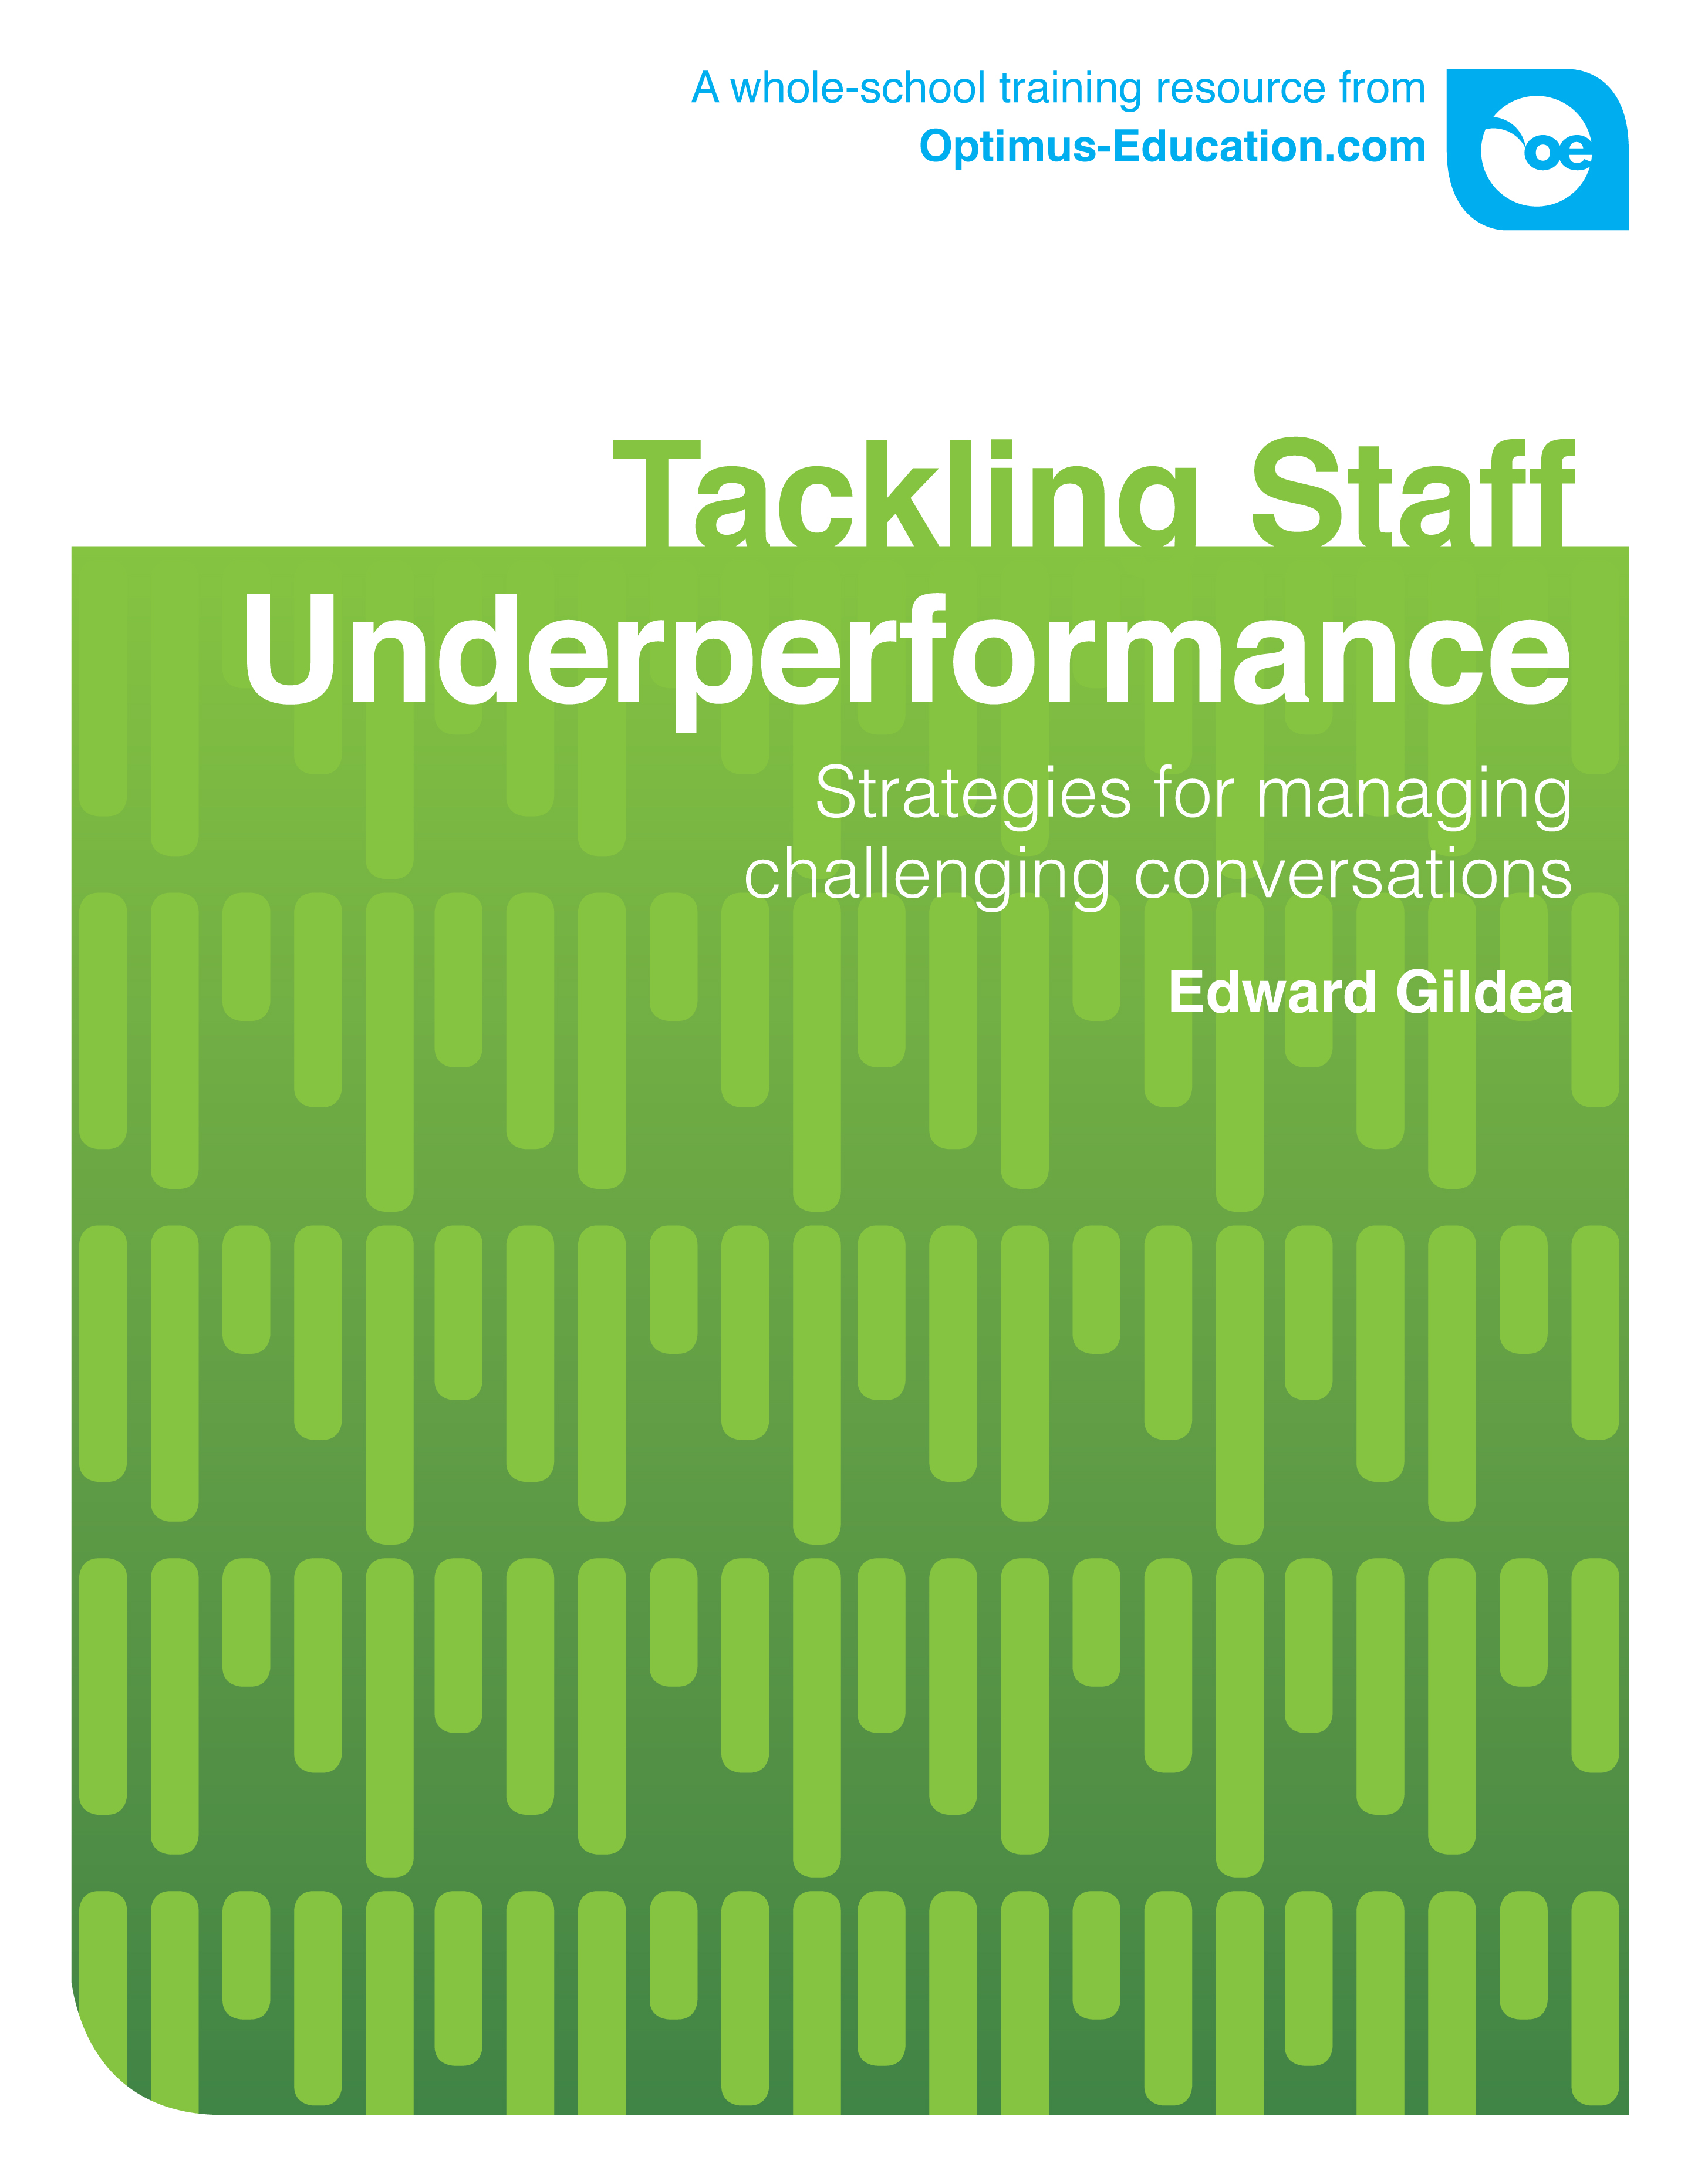 Tackling Staff Underperformance: Strategies for managing challenging conversations